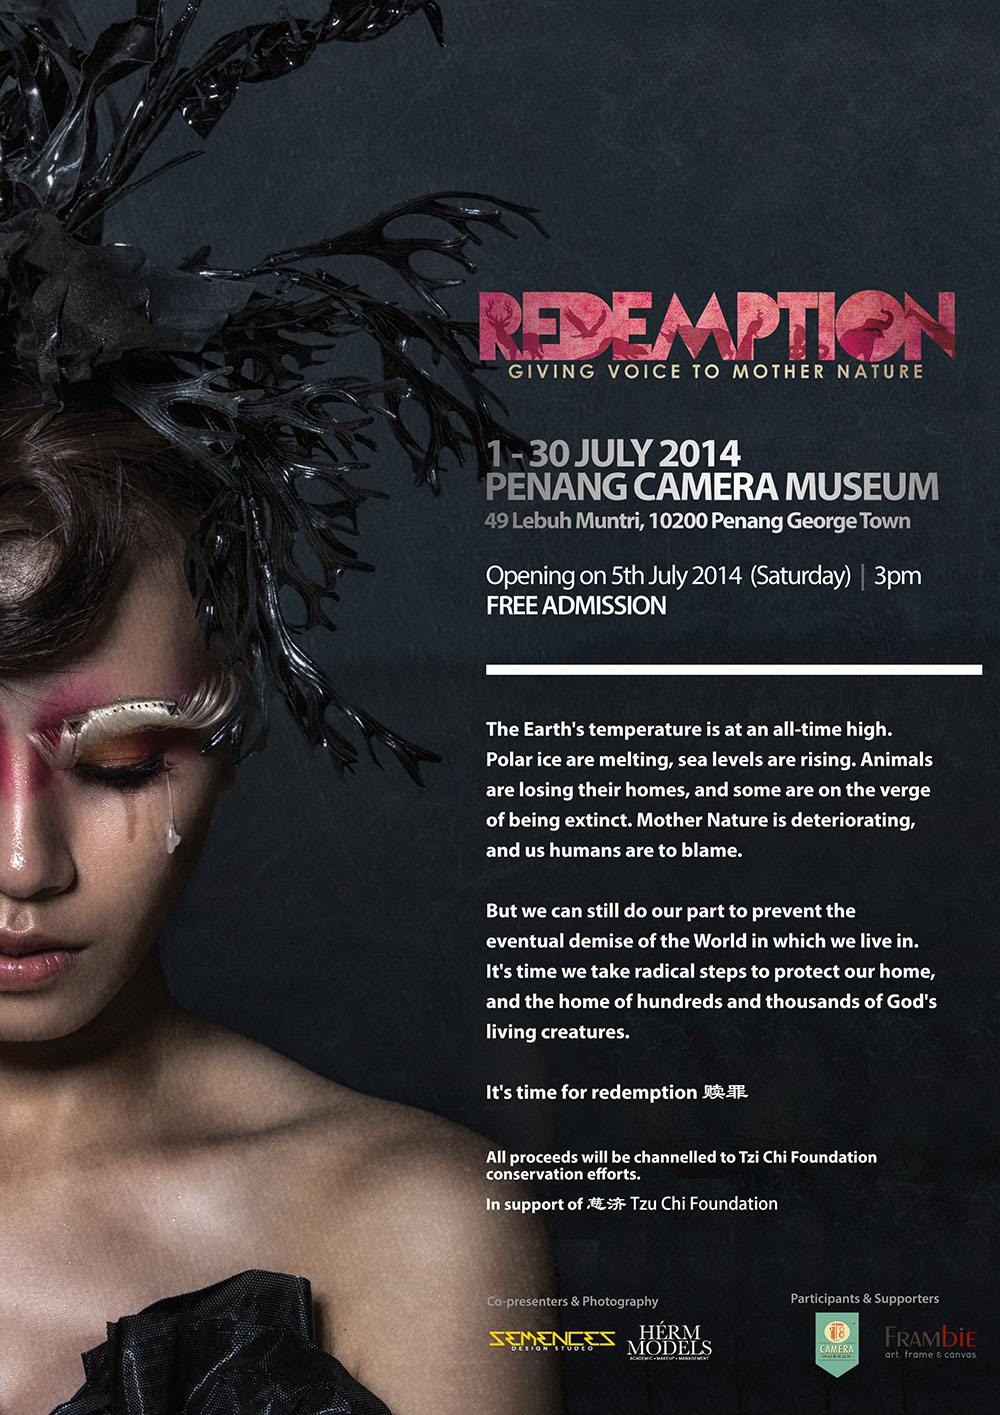 redemption - photography exhibition